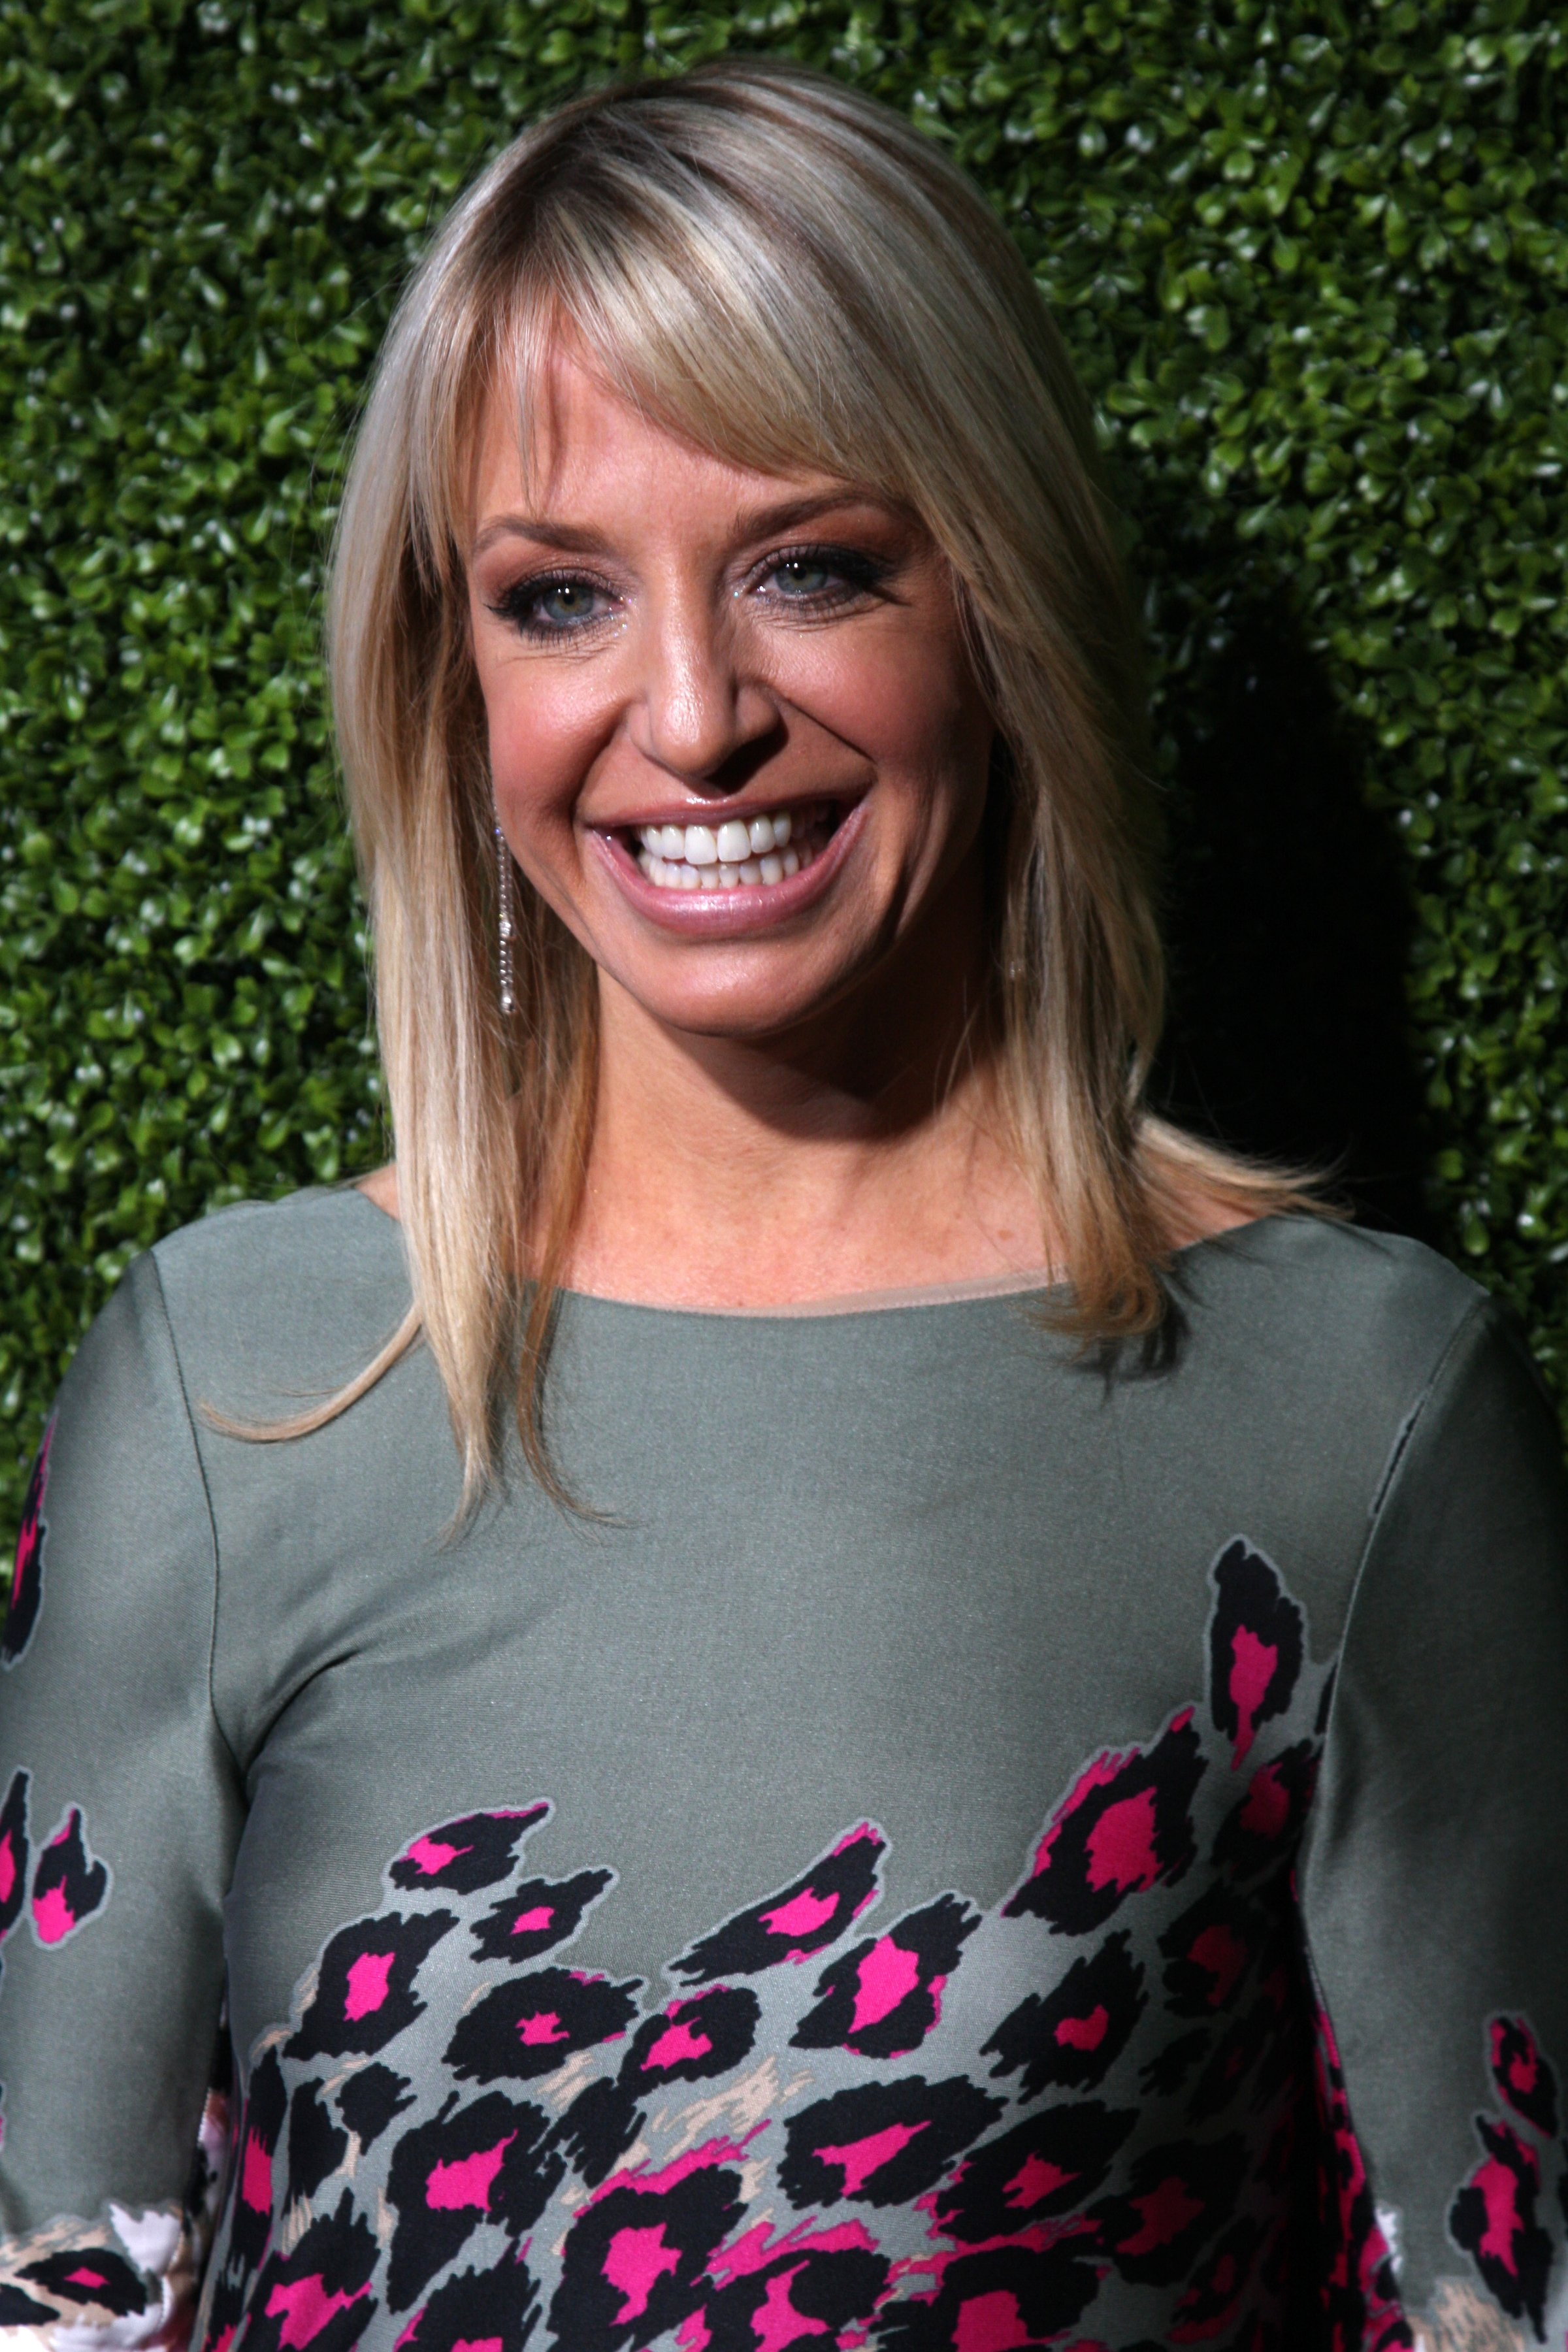 Laura Berman arrives at the Oprah Winfrey Network Winter 2011 TCA Party at The Langham Huntington Hotel on January 6, 2011 | Photo: Shutterstock